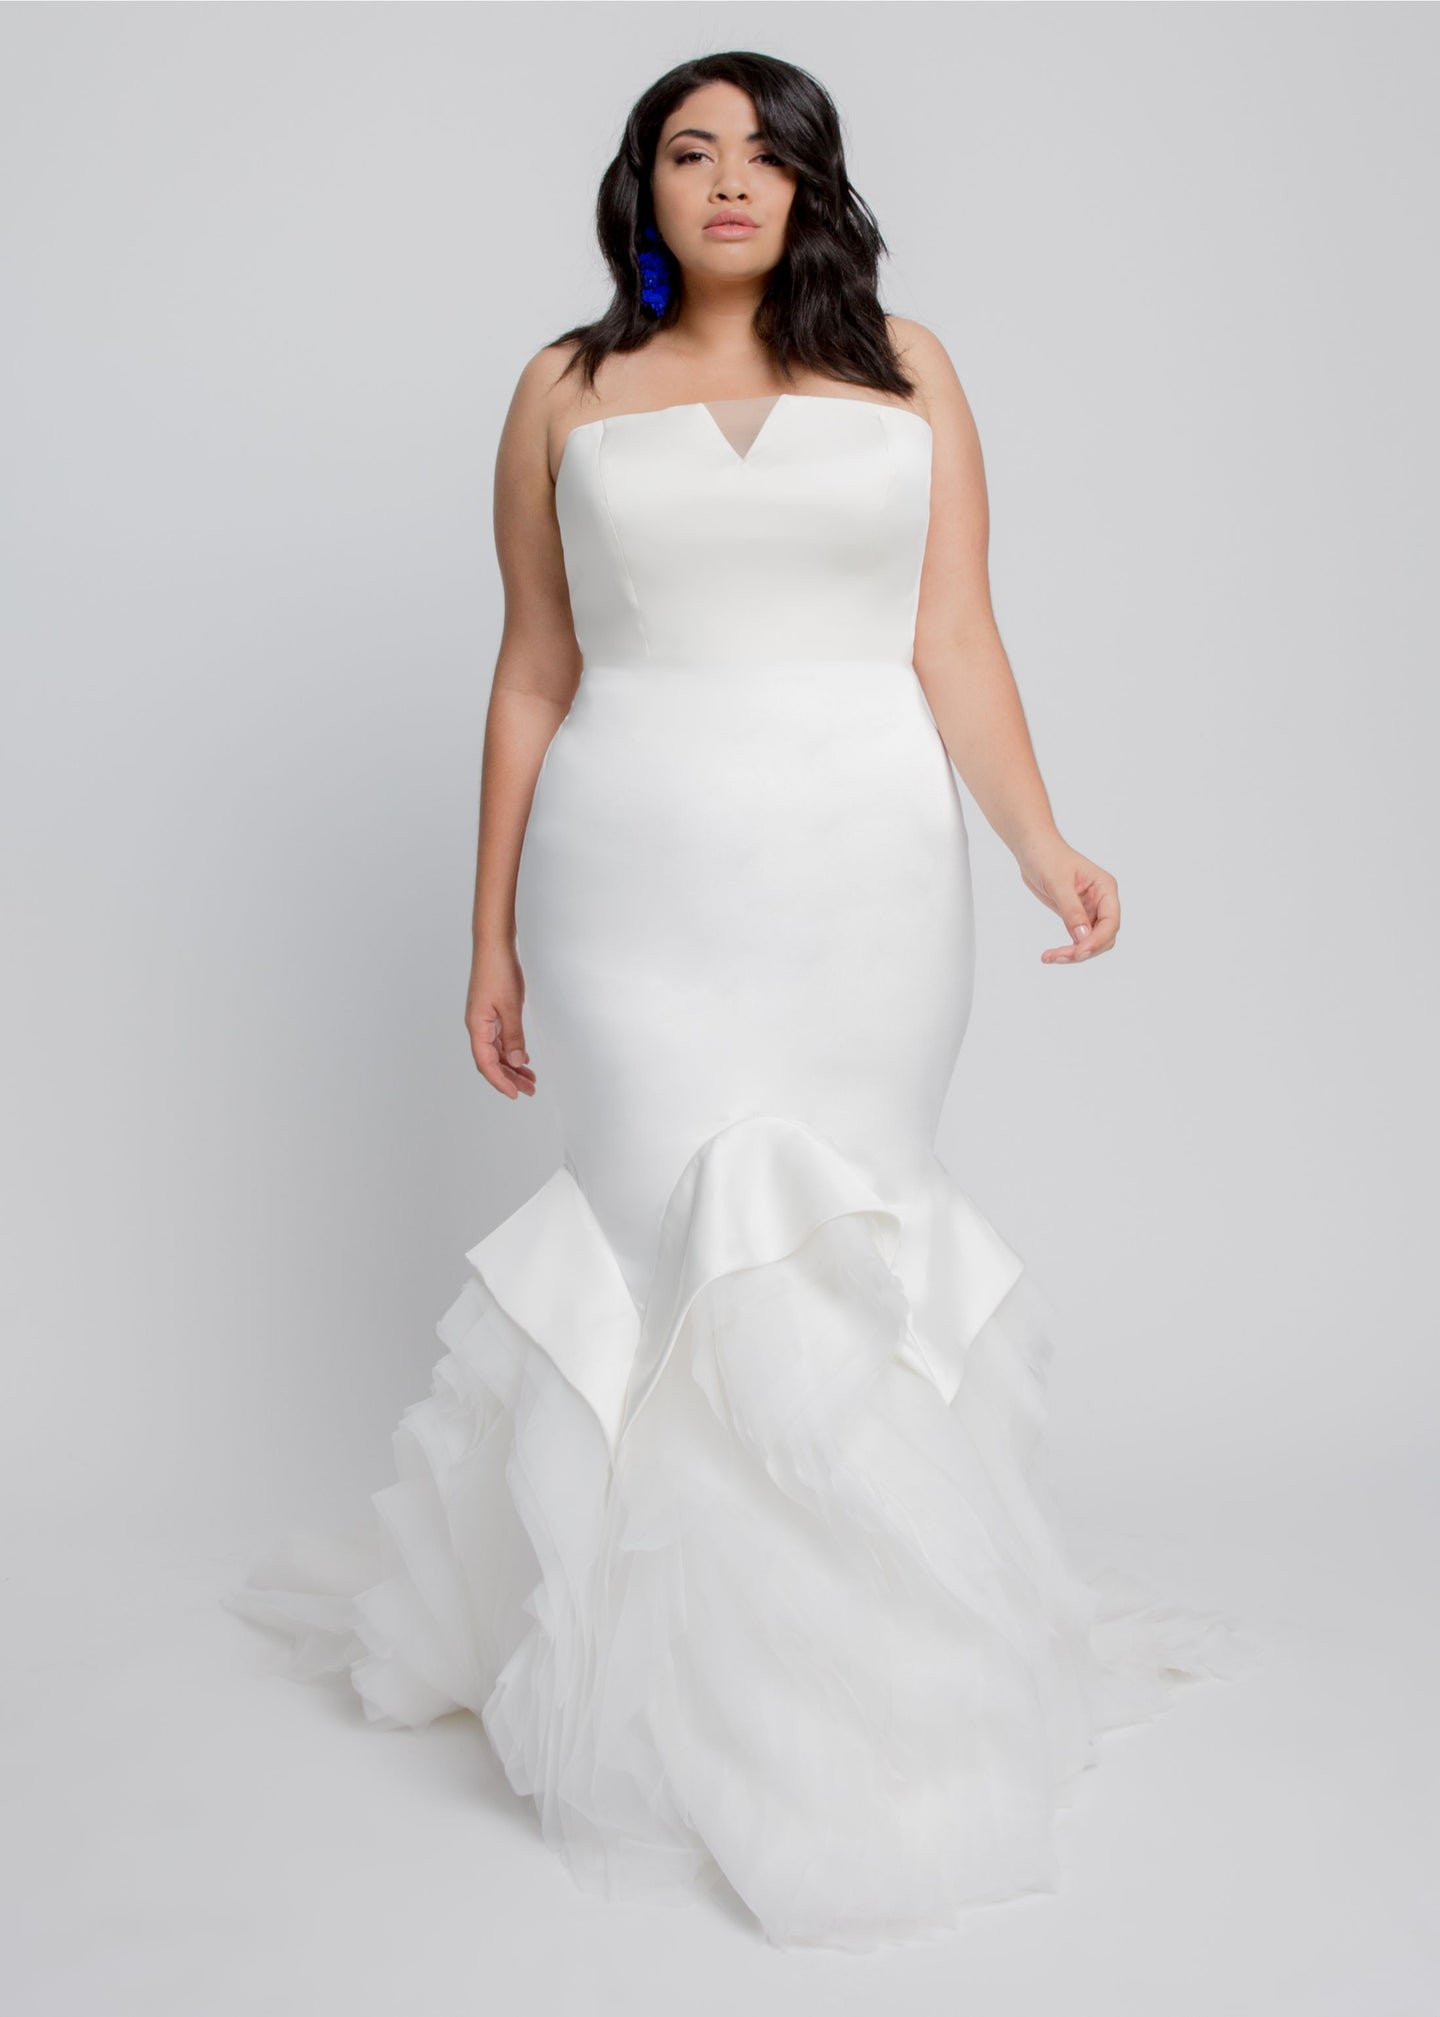 Gorgeous bridal gowns for all body shapes: plus size, curvy, or petite brides. Try on our wedding dresses at home. Size 0-30. Comfortable. Convenient. Fun. Lace or satin. Mermaid or A-line.  This clean crepe gown in Ivory, adds drama with a mermaid organza ruffle hem. The tulle V draws eye down to a figure-flattering silhouette. Billowing layers of organza ruffles in matching Ivory complete a modern classic bridal look. An elegant lace-up back assists in a great fit and added detail.